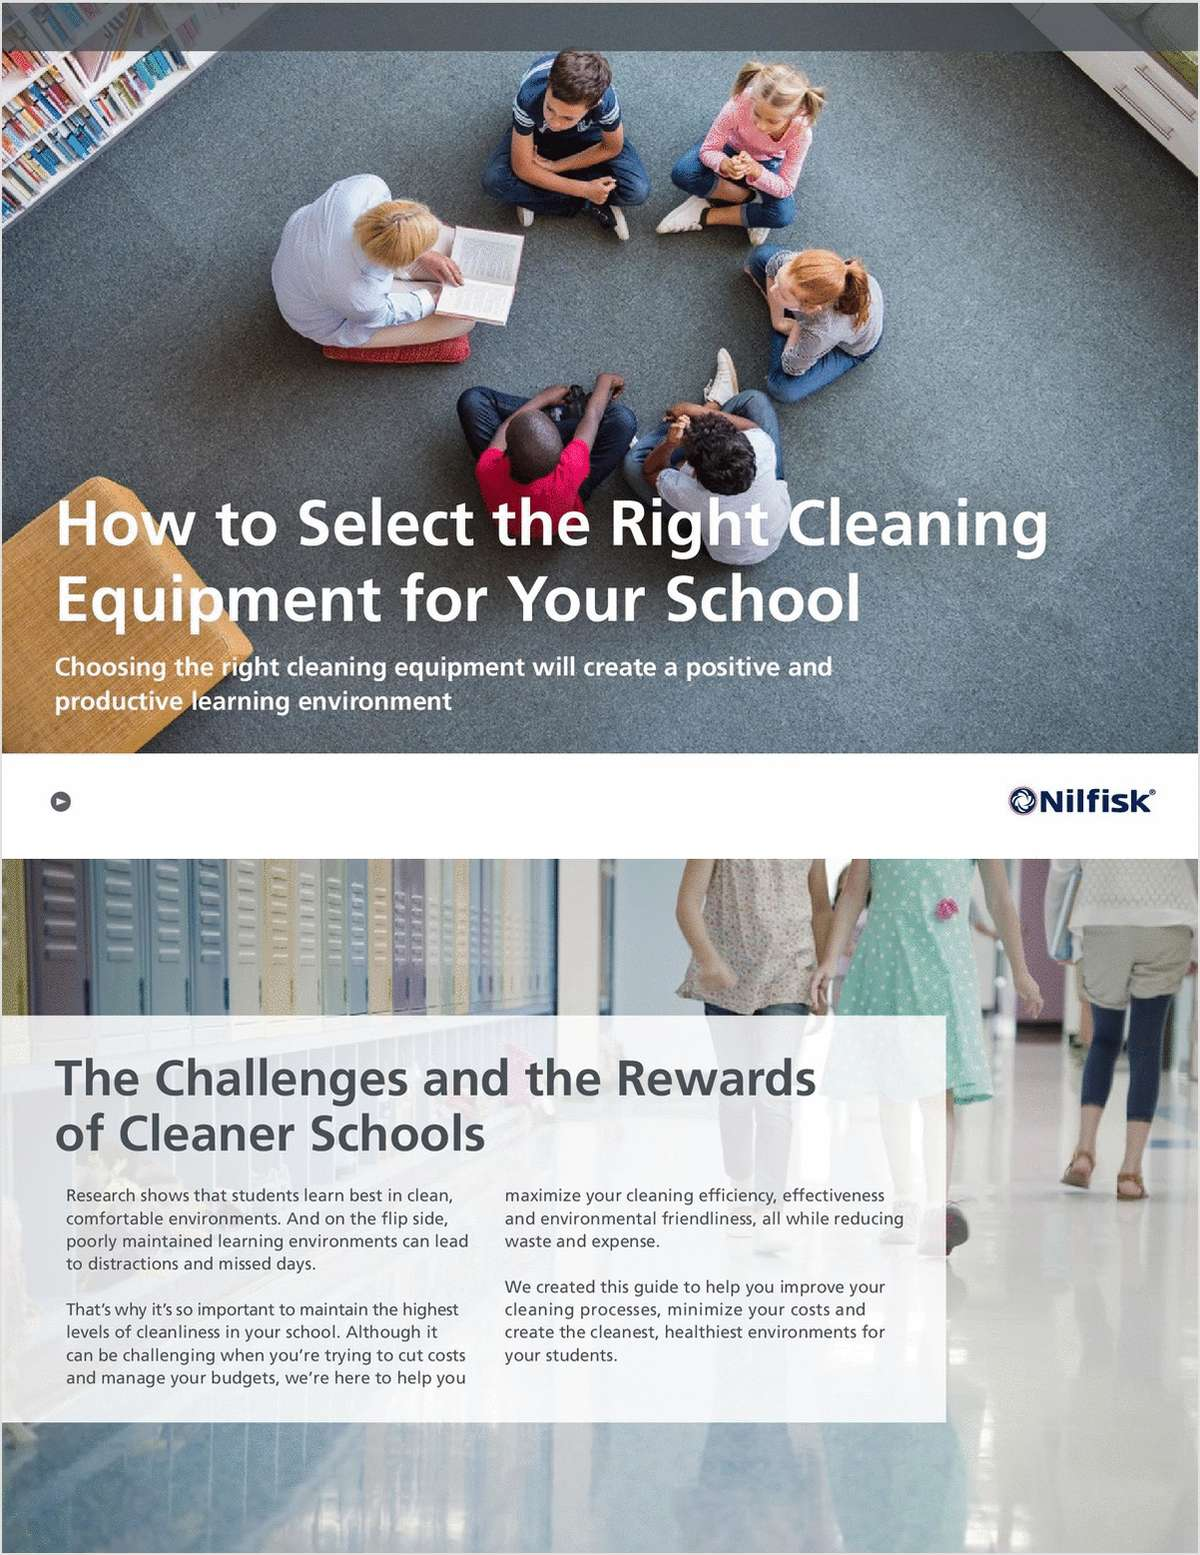 Steps to Selecting the Right Cleaning Equipment for Your School